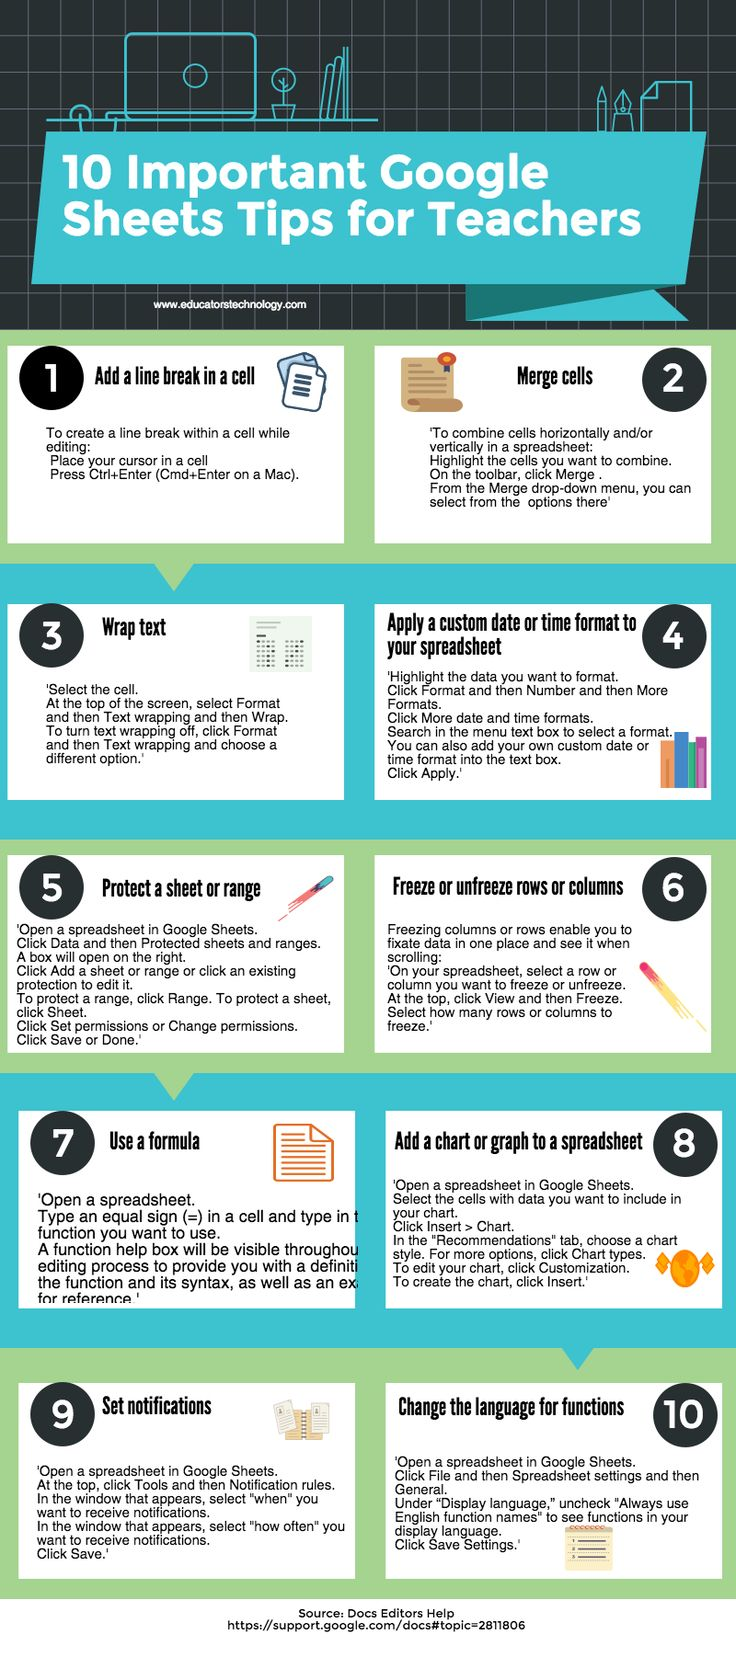 10 Important Google Sheets Tips for Teachers